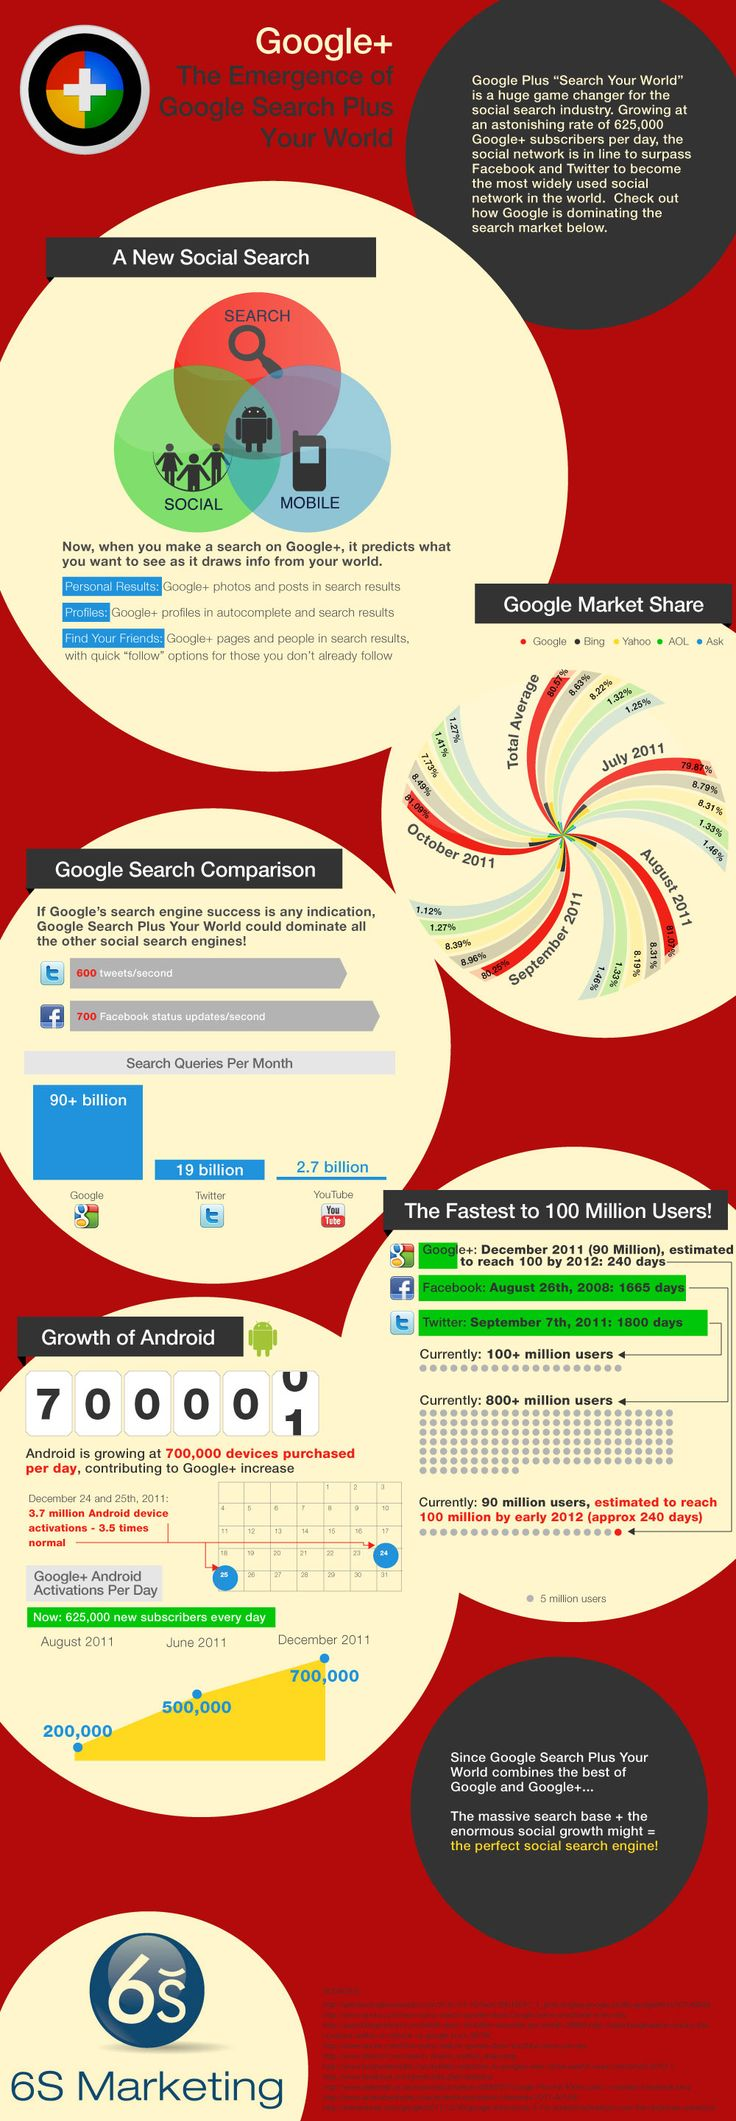 Really nice Infographic on Google+: Marketing Strategies, Digital Marketing, Social Media Marketing, Small Business, Google Search, The Social Network, Infographic, Socialmedia, Vienna Austria